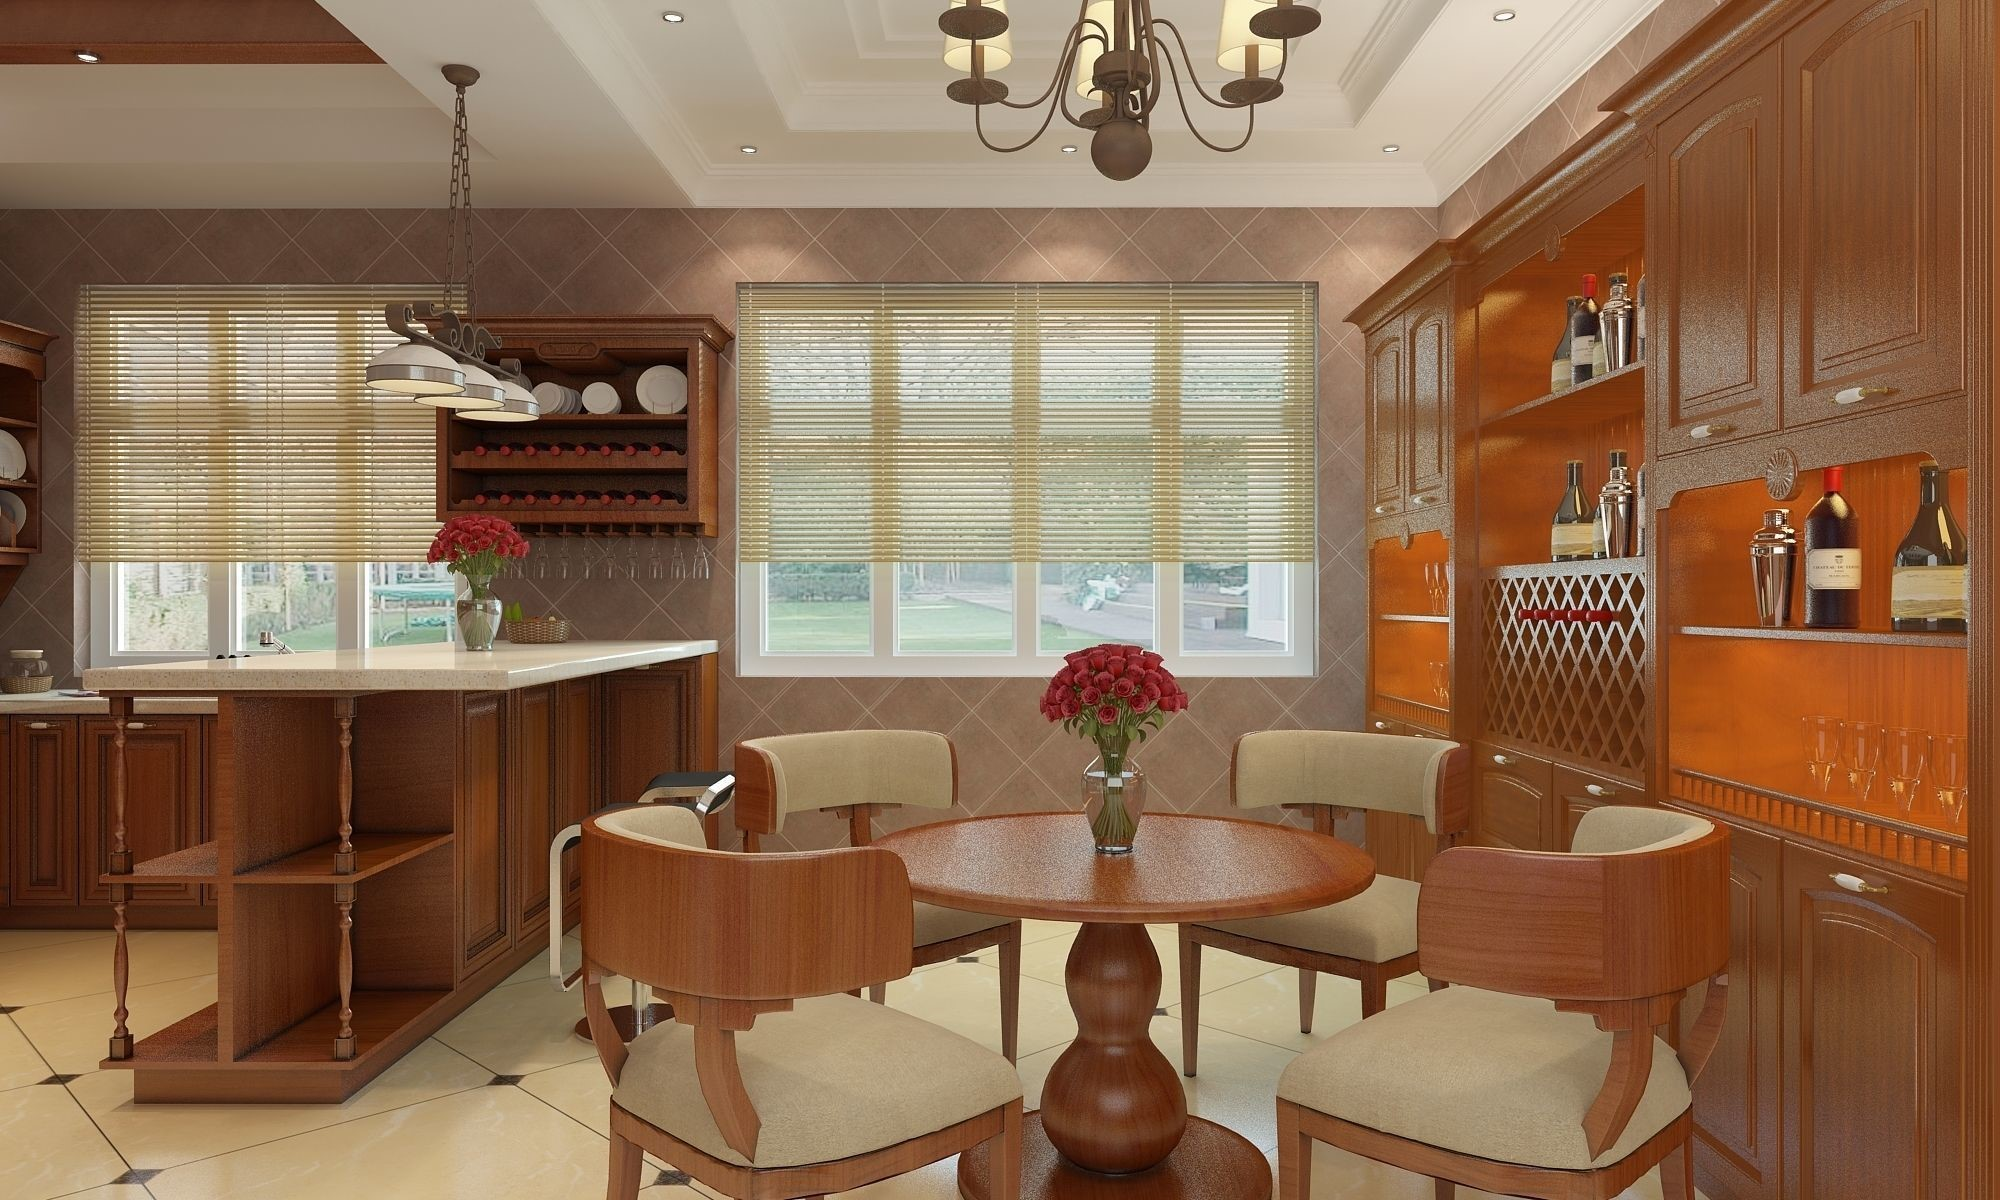 3D visualization of detailed interior created in 3ds max 2012, rendered by Vray. The scene is as shown, includes all lights, cameras, and settings and is ready to render. All materials and textures are included with the 3D visualization.